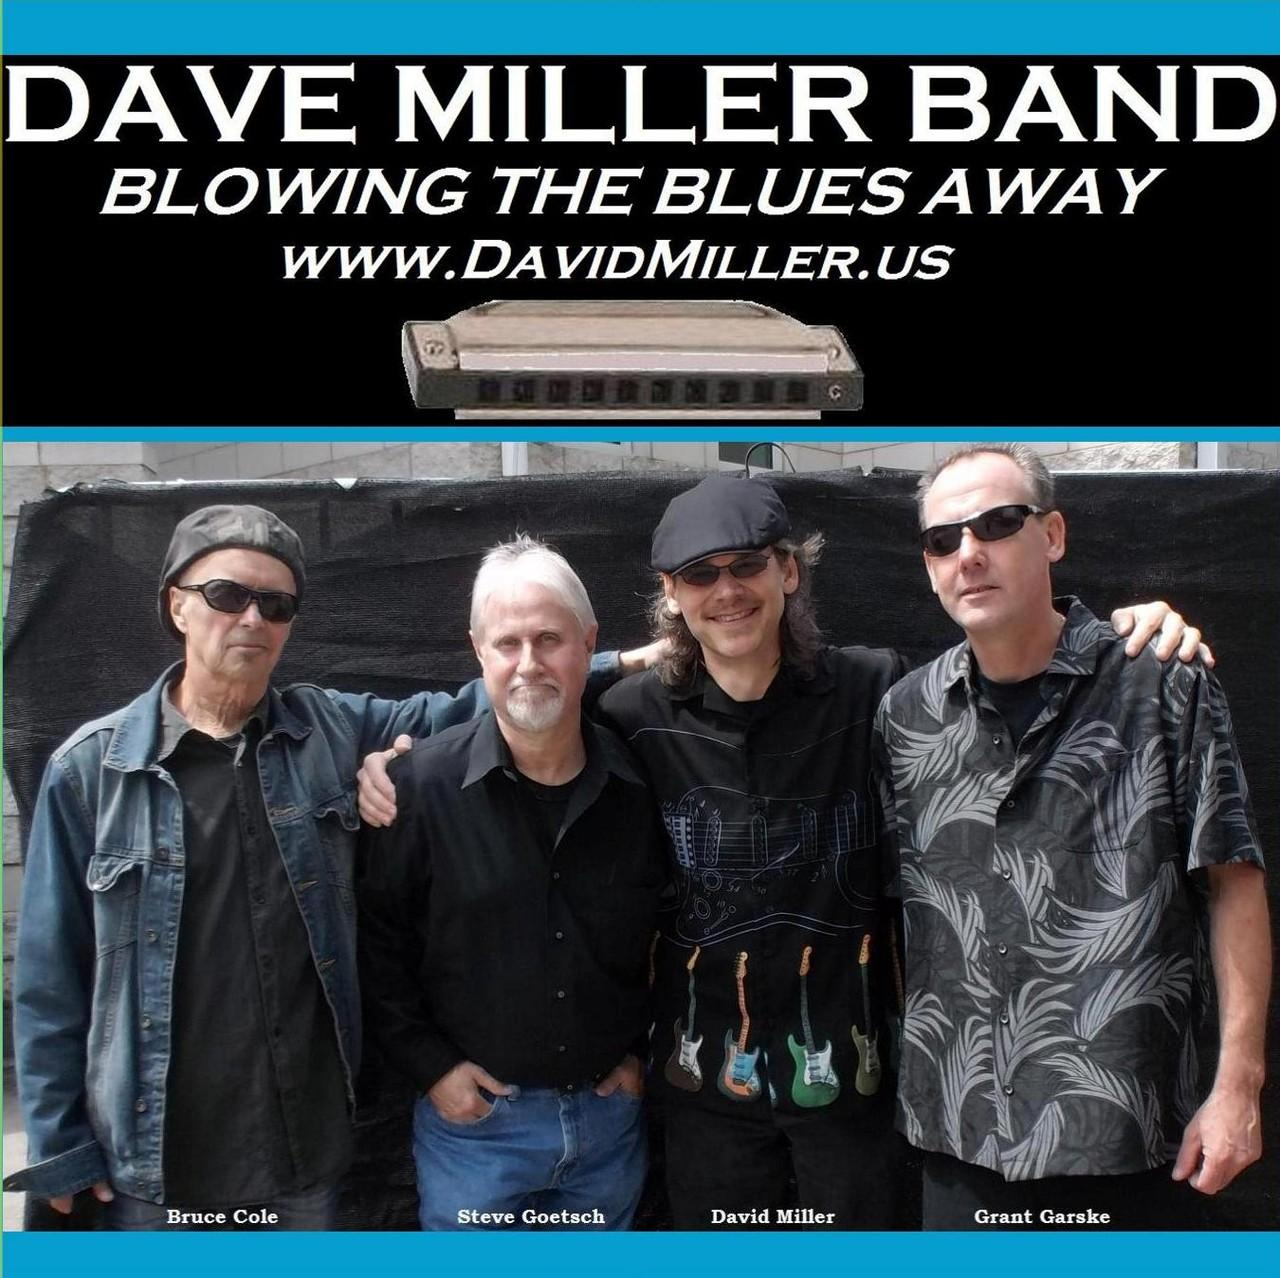 The Dave Miller Band